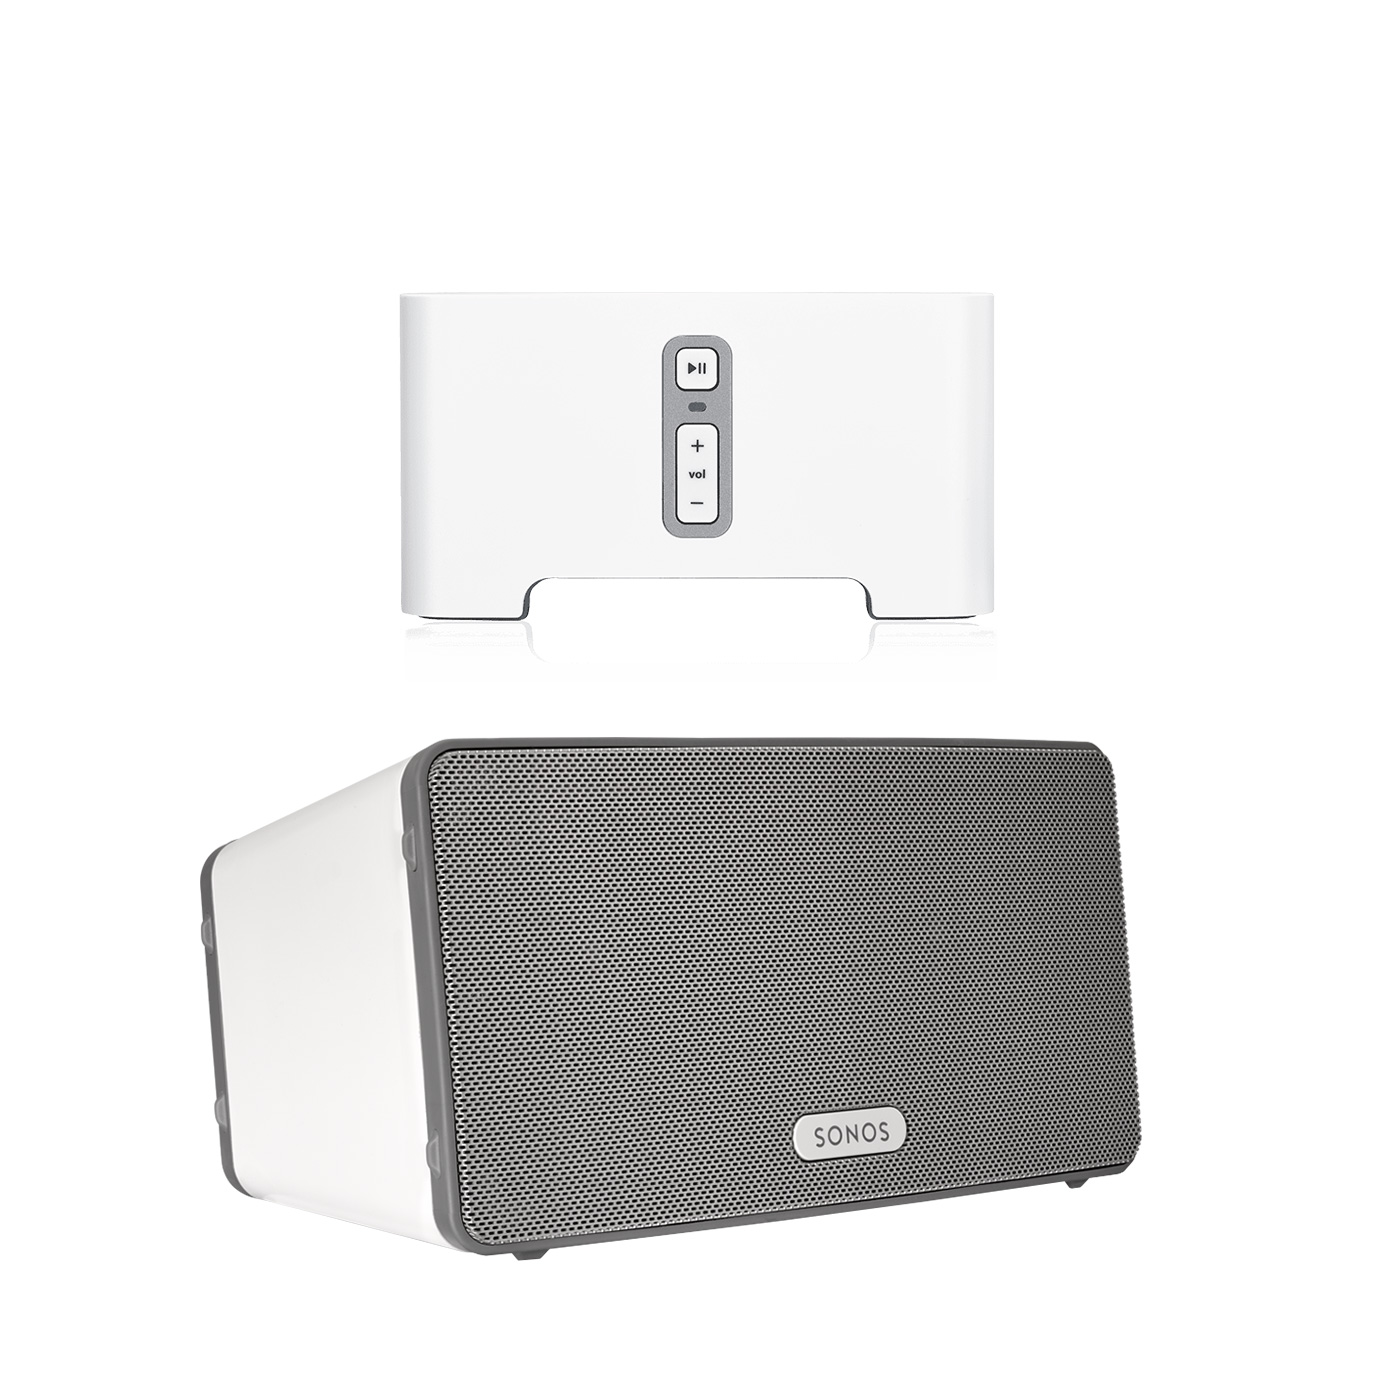 sonos play 3 ethernet connection